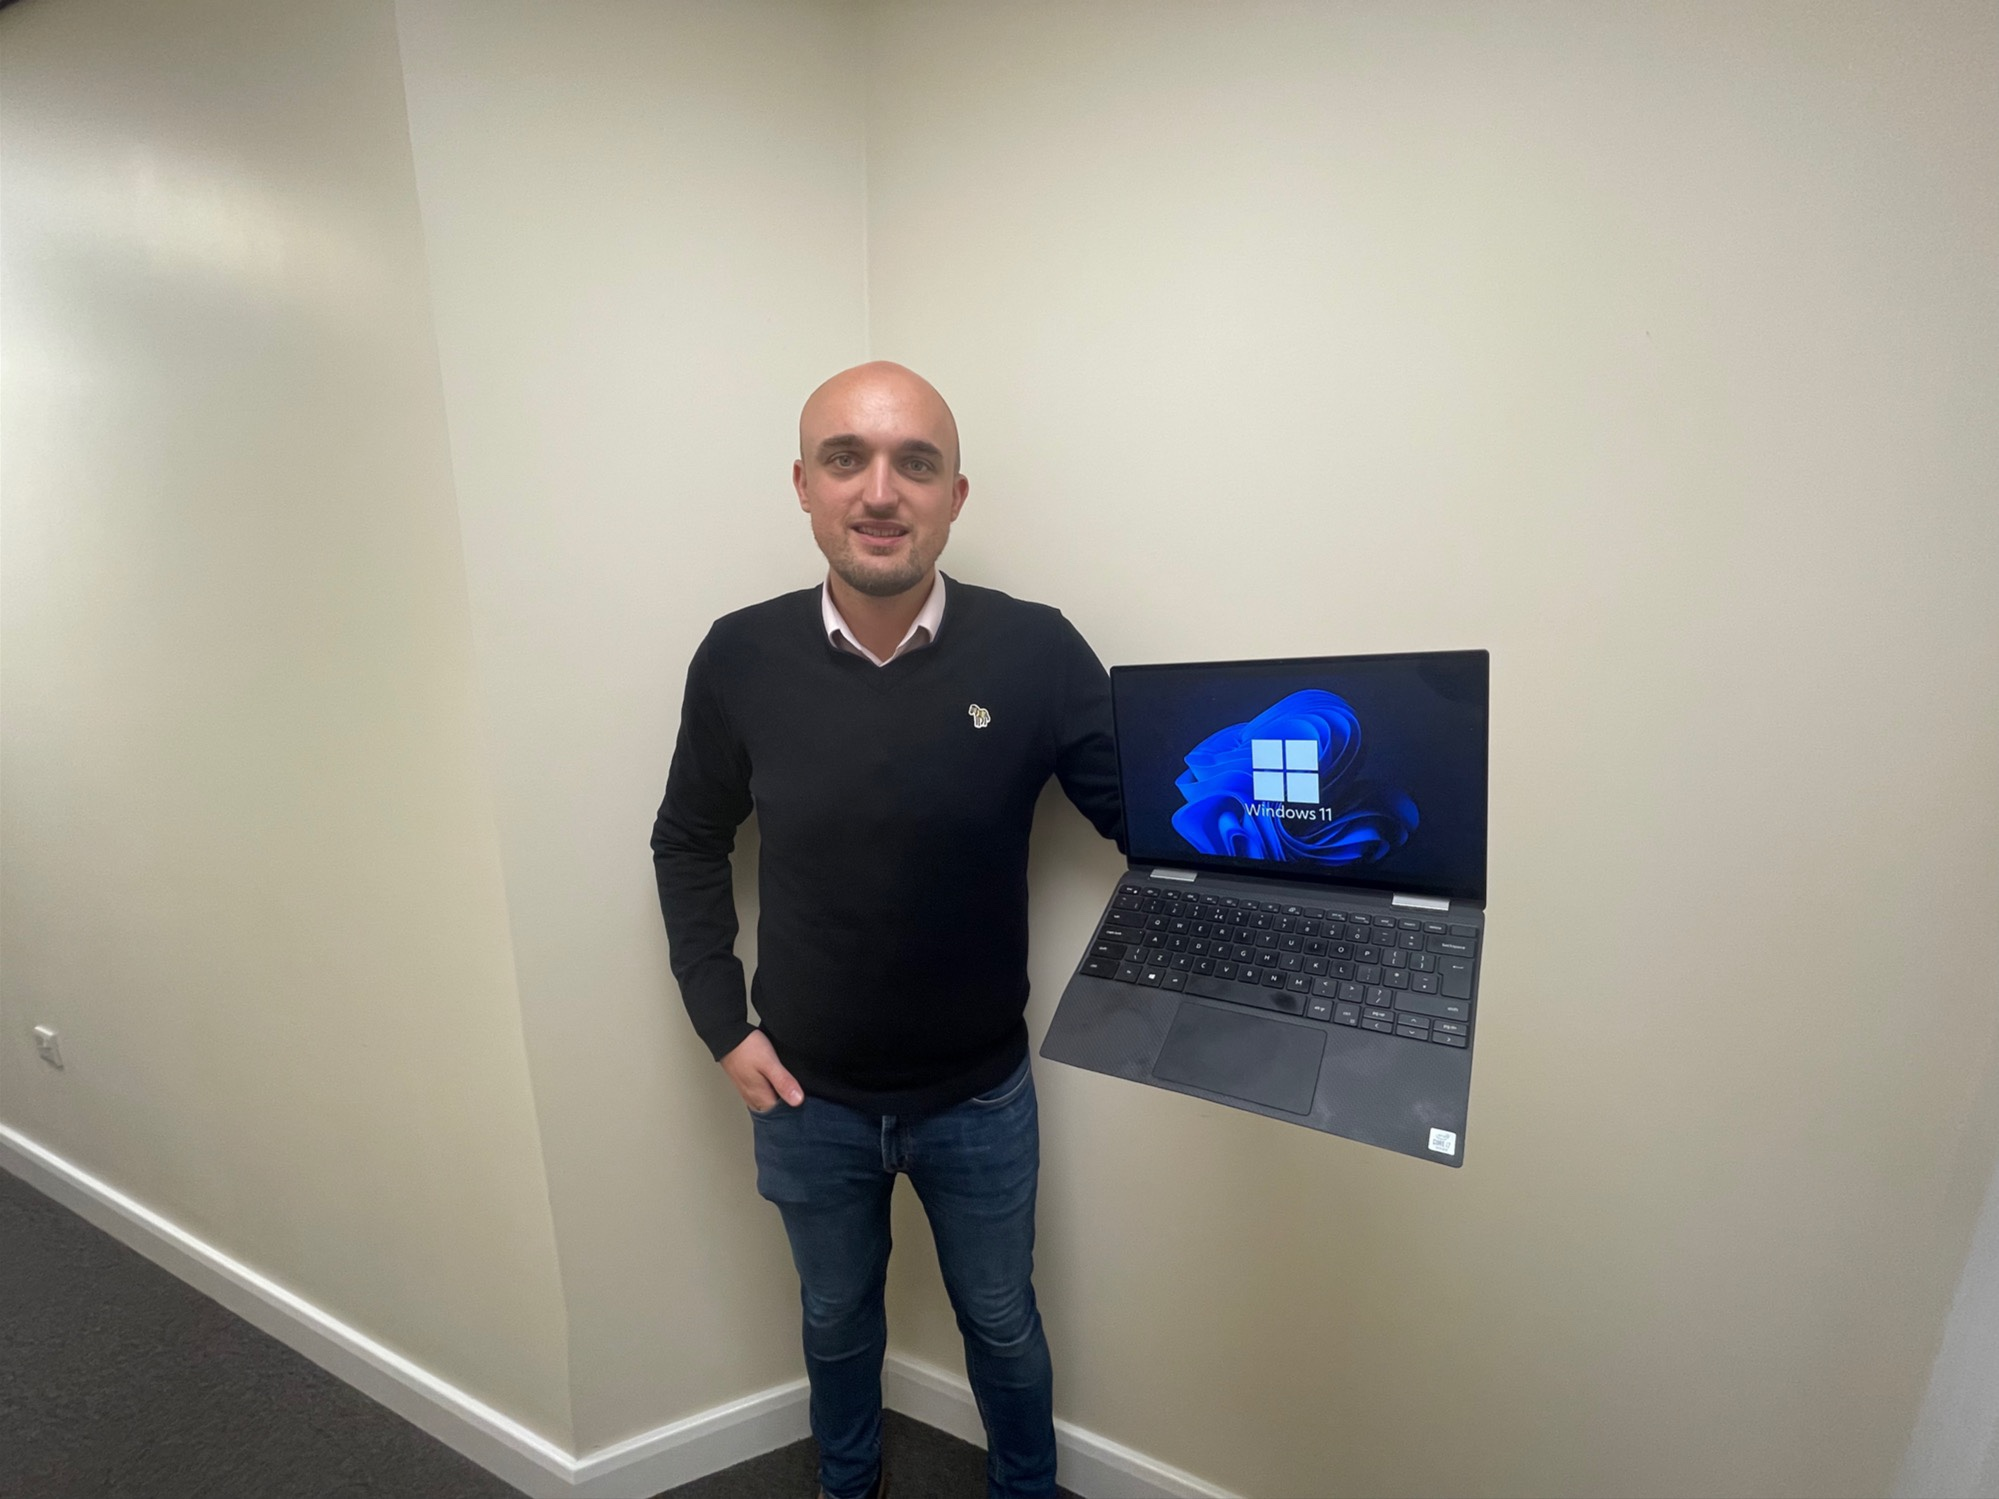 Windows 11 Now Installed at Bowland IT!  Could this new Apple look be the future?